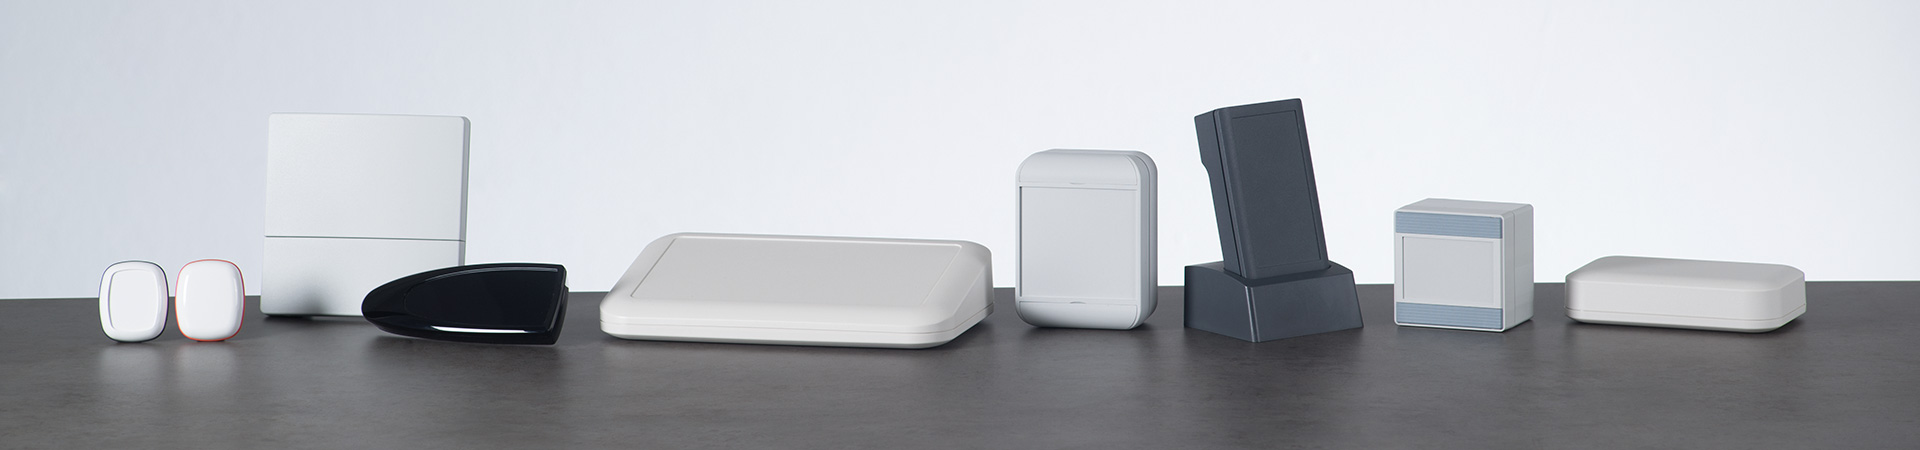 IP65 / IP66 / IP67 Enclosures